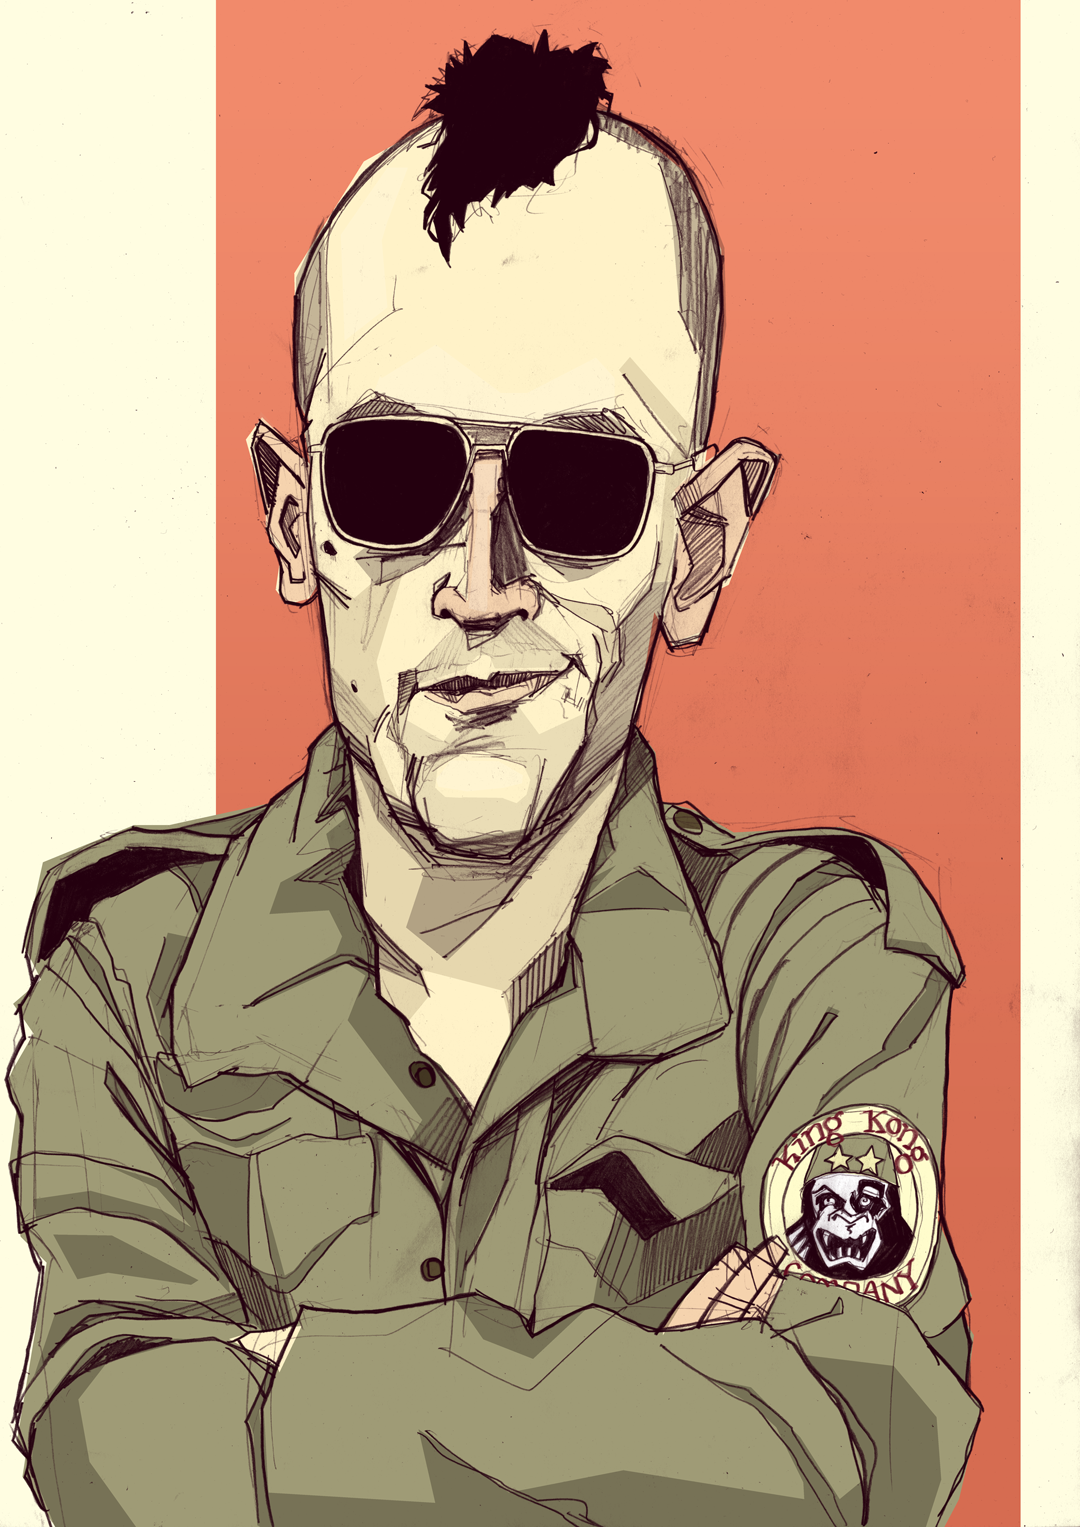 Robert De Niro Taxi Driver mohawk illustration